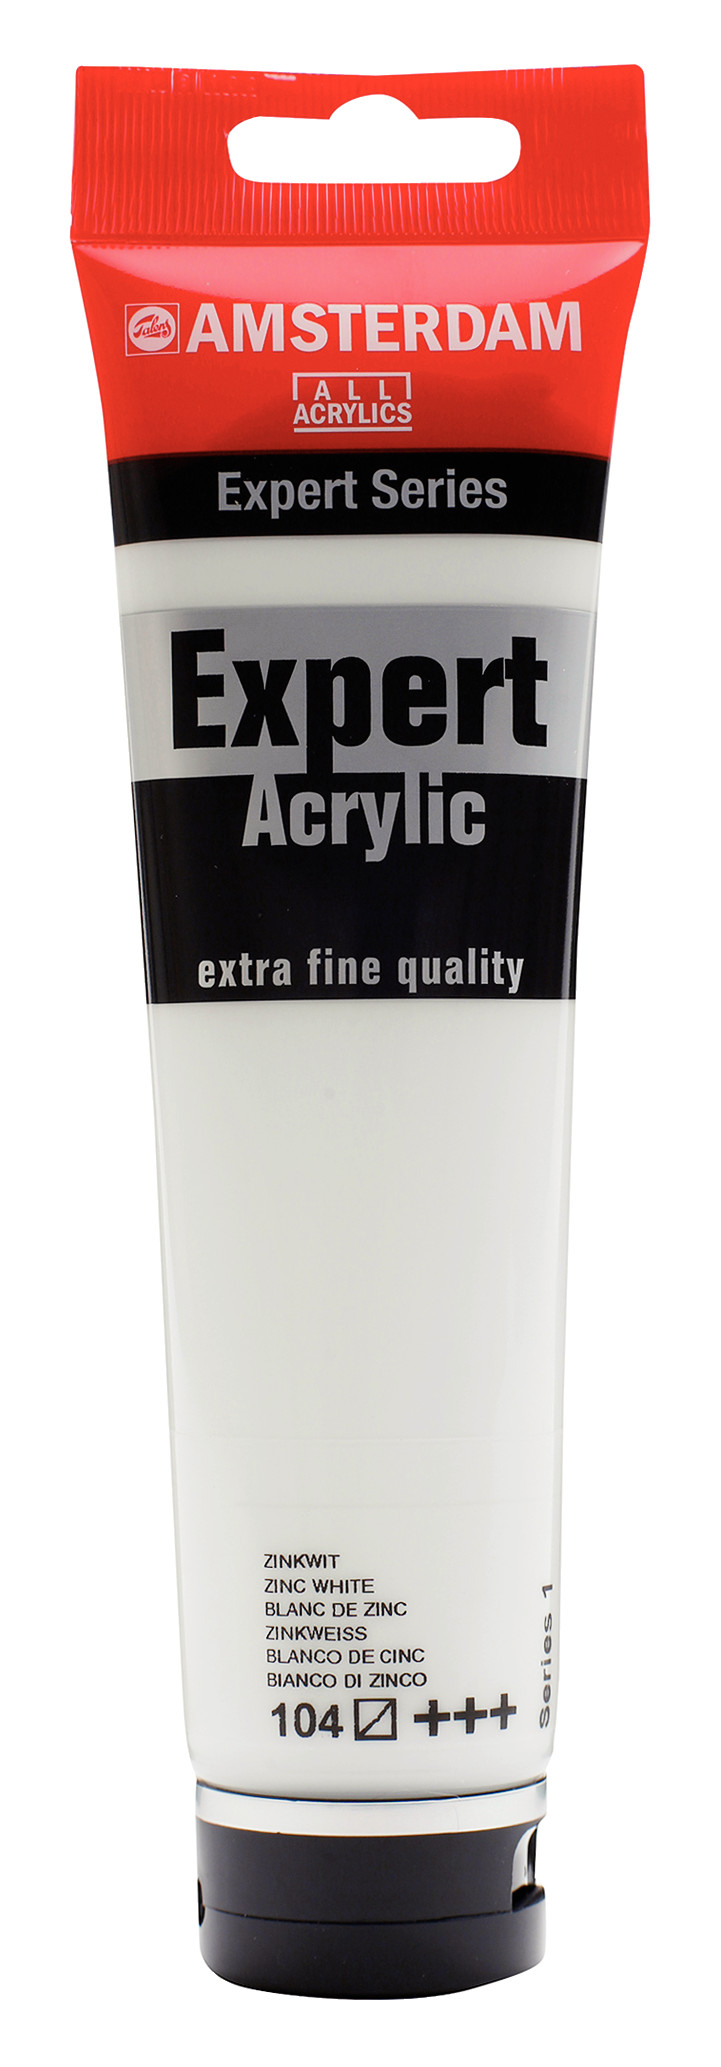 Amsterdam Expert Series Acrylic Tube 150 ml Zinc White 104